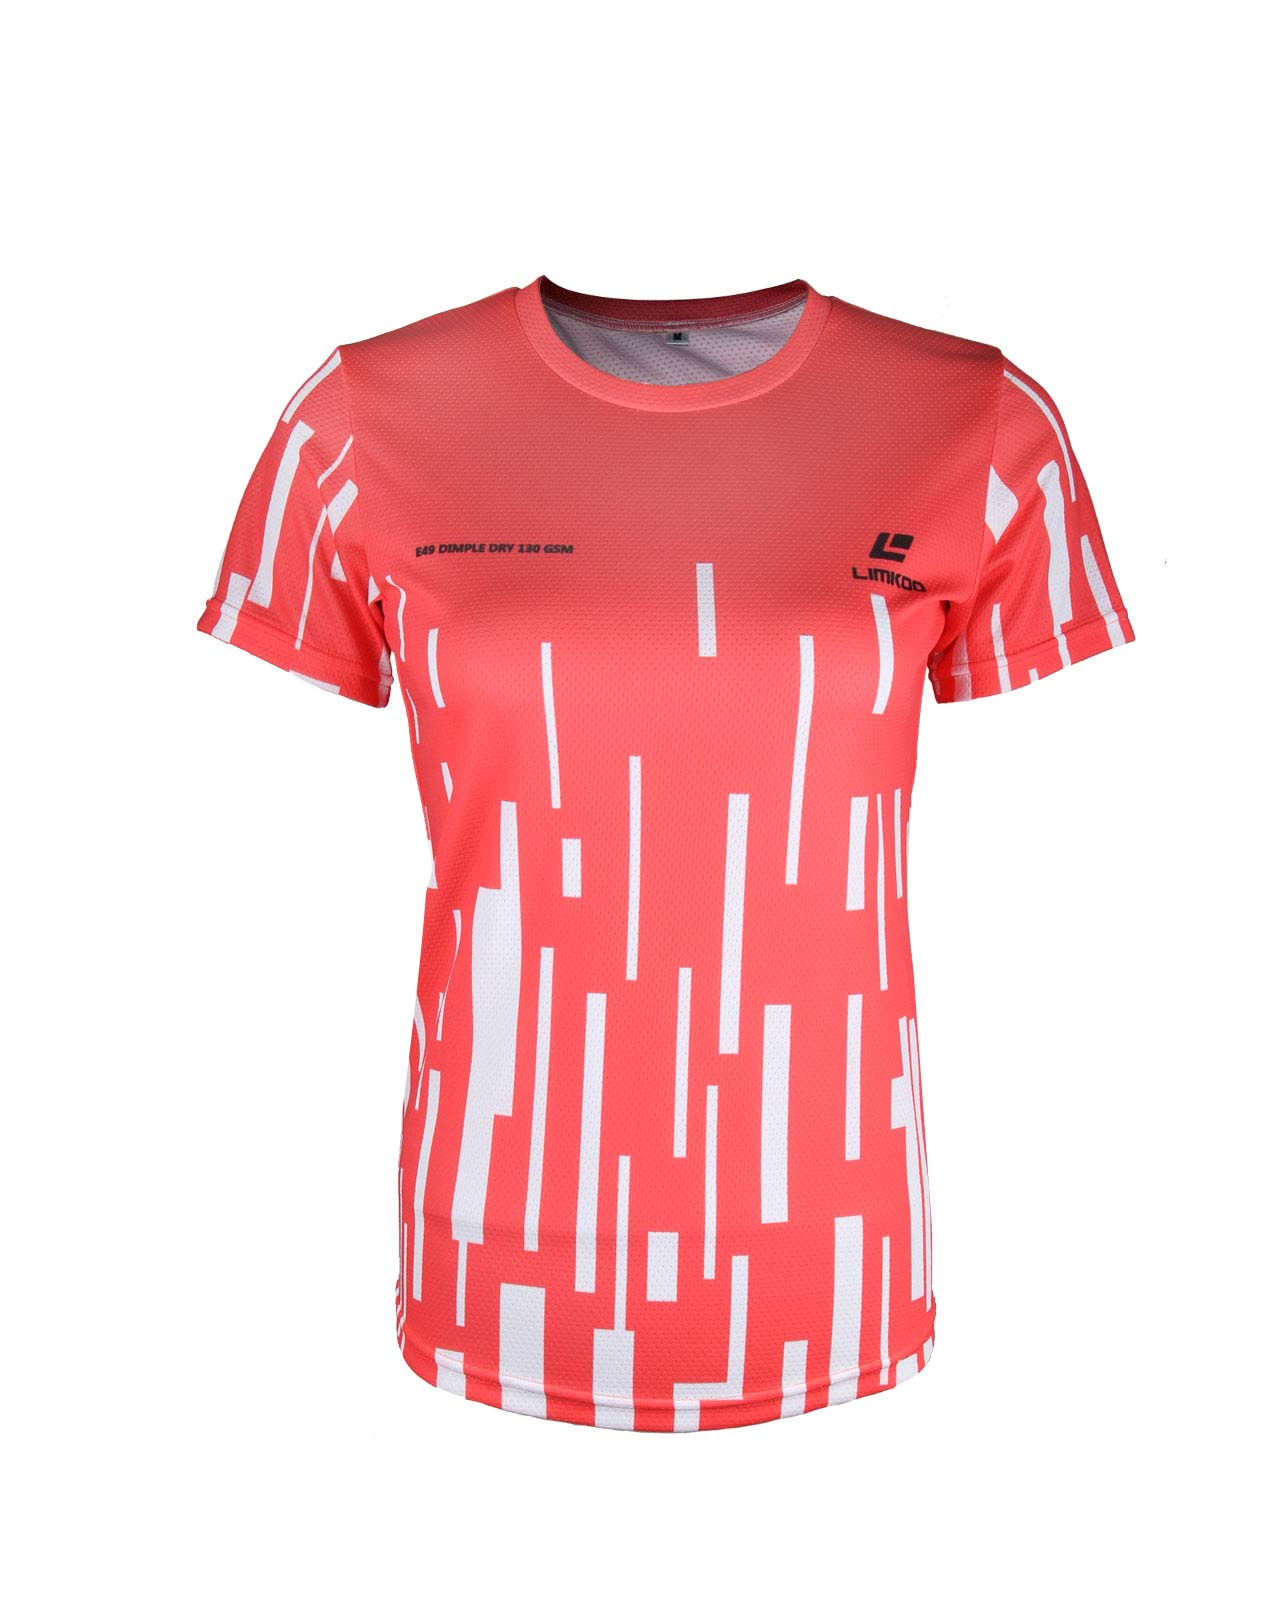 Italian DIMPLE DRY Short Sleeve Running Shirt